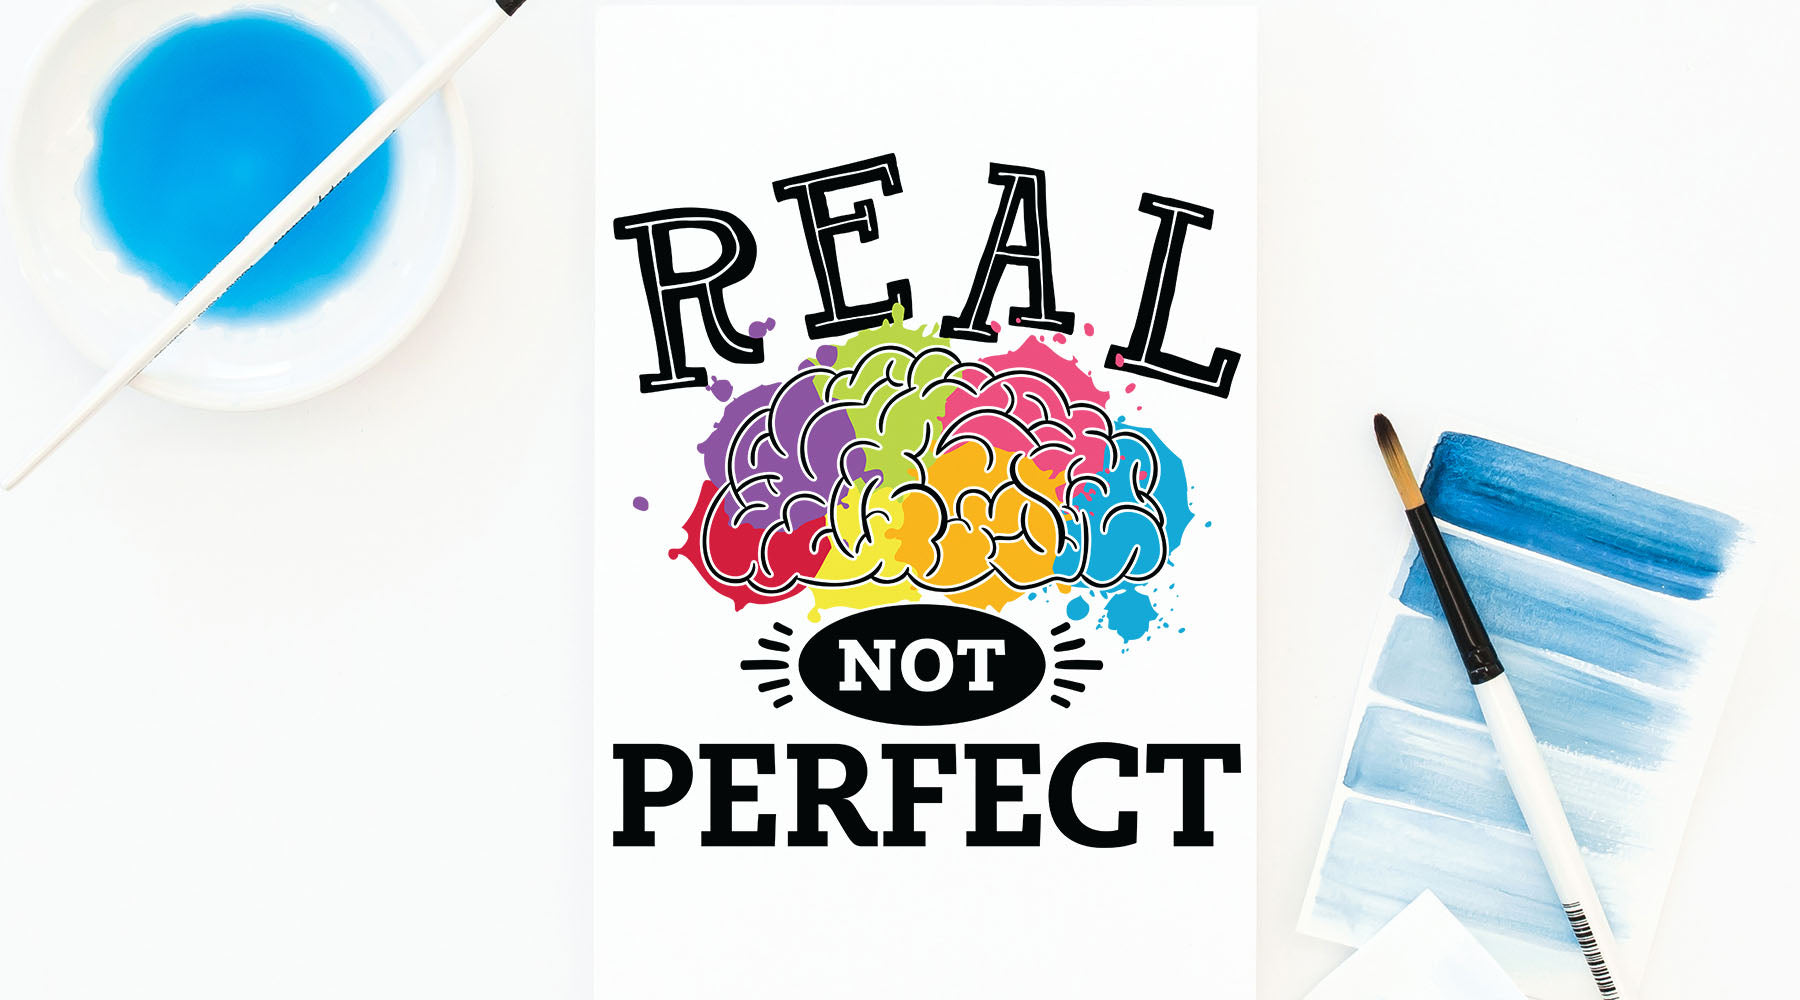 Real Not Perfect Autism and Neurodiversity Awareness Design | SVG DXF EPS PNG Cut Files | Free for Commercial Use